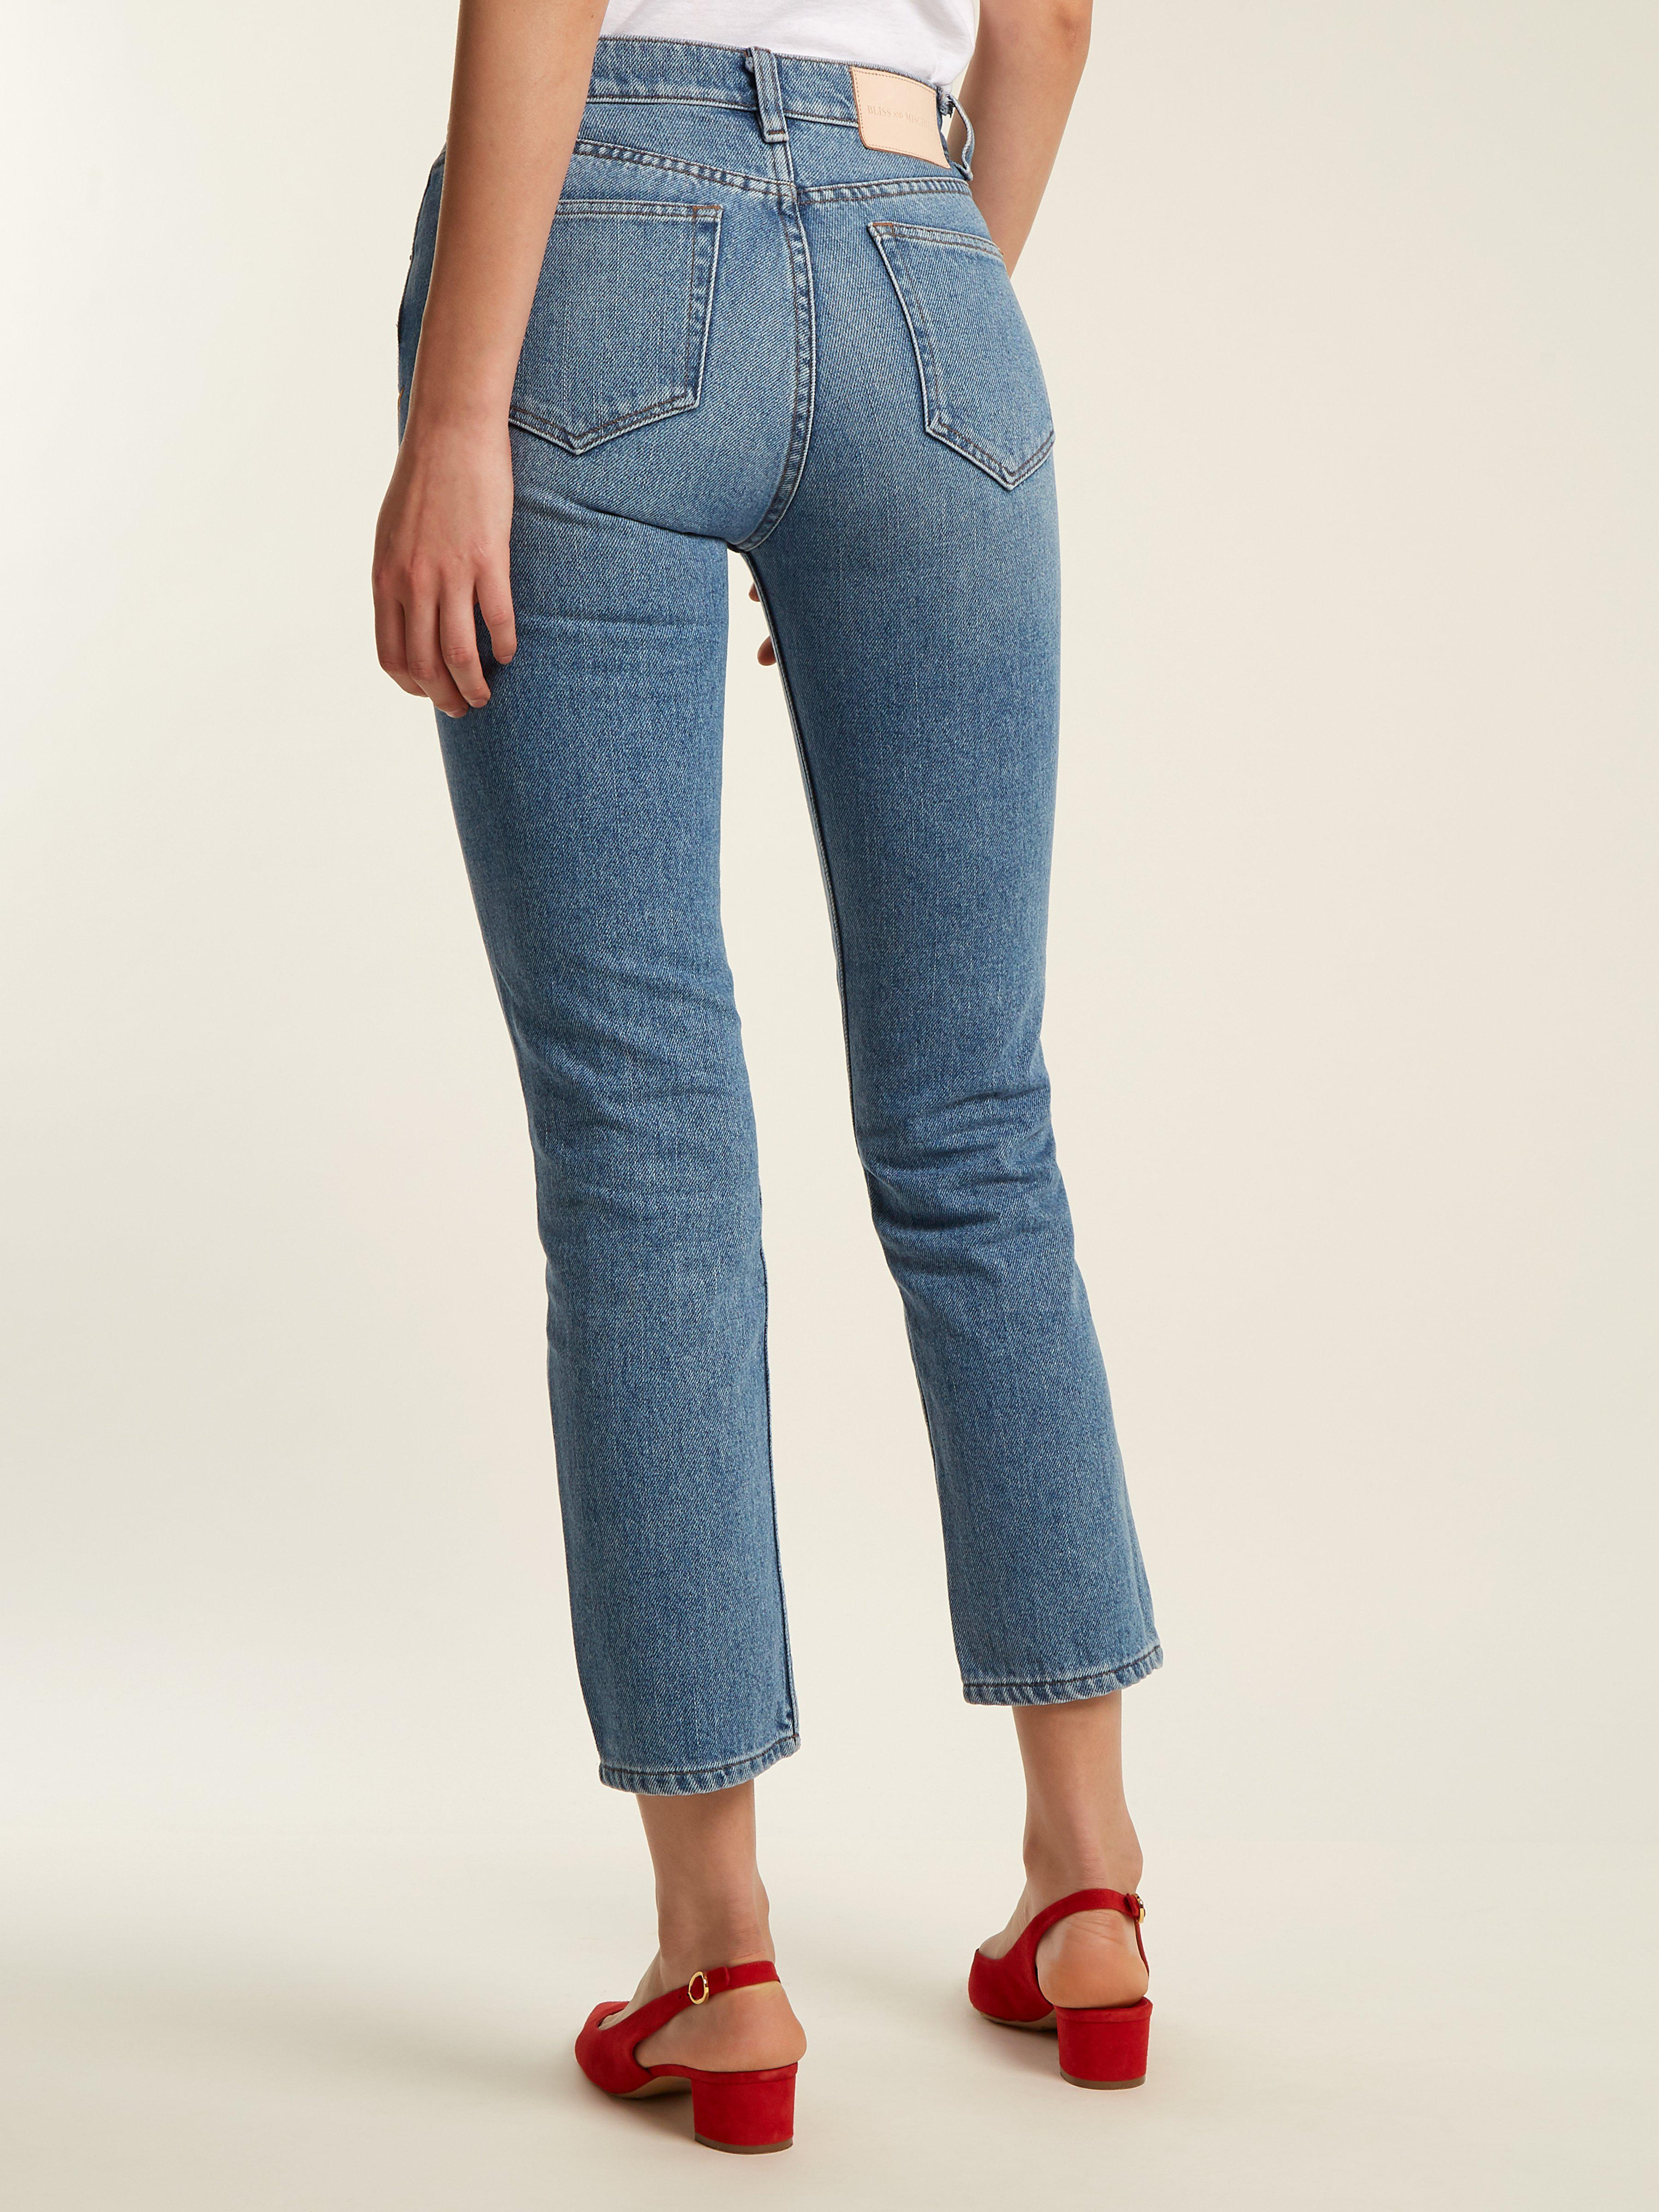 Bliss and Mischief Denim Collector-fit High-rise Jeans in Denim (Blue)